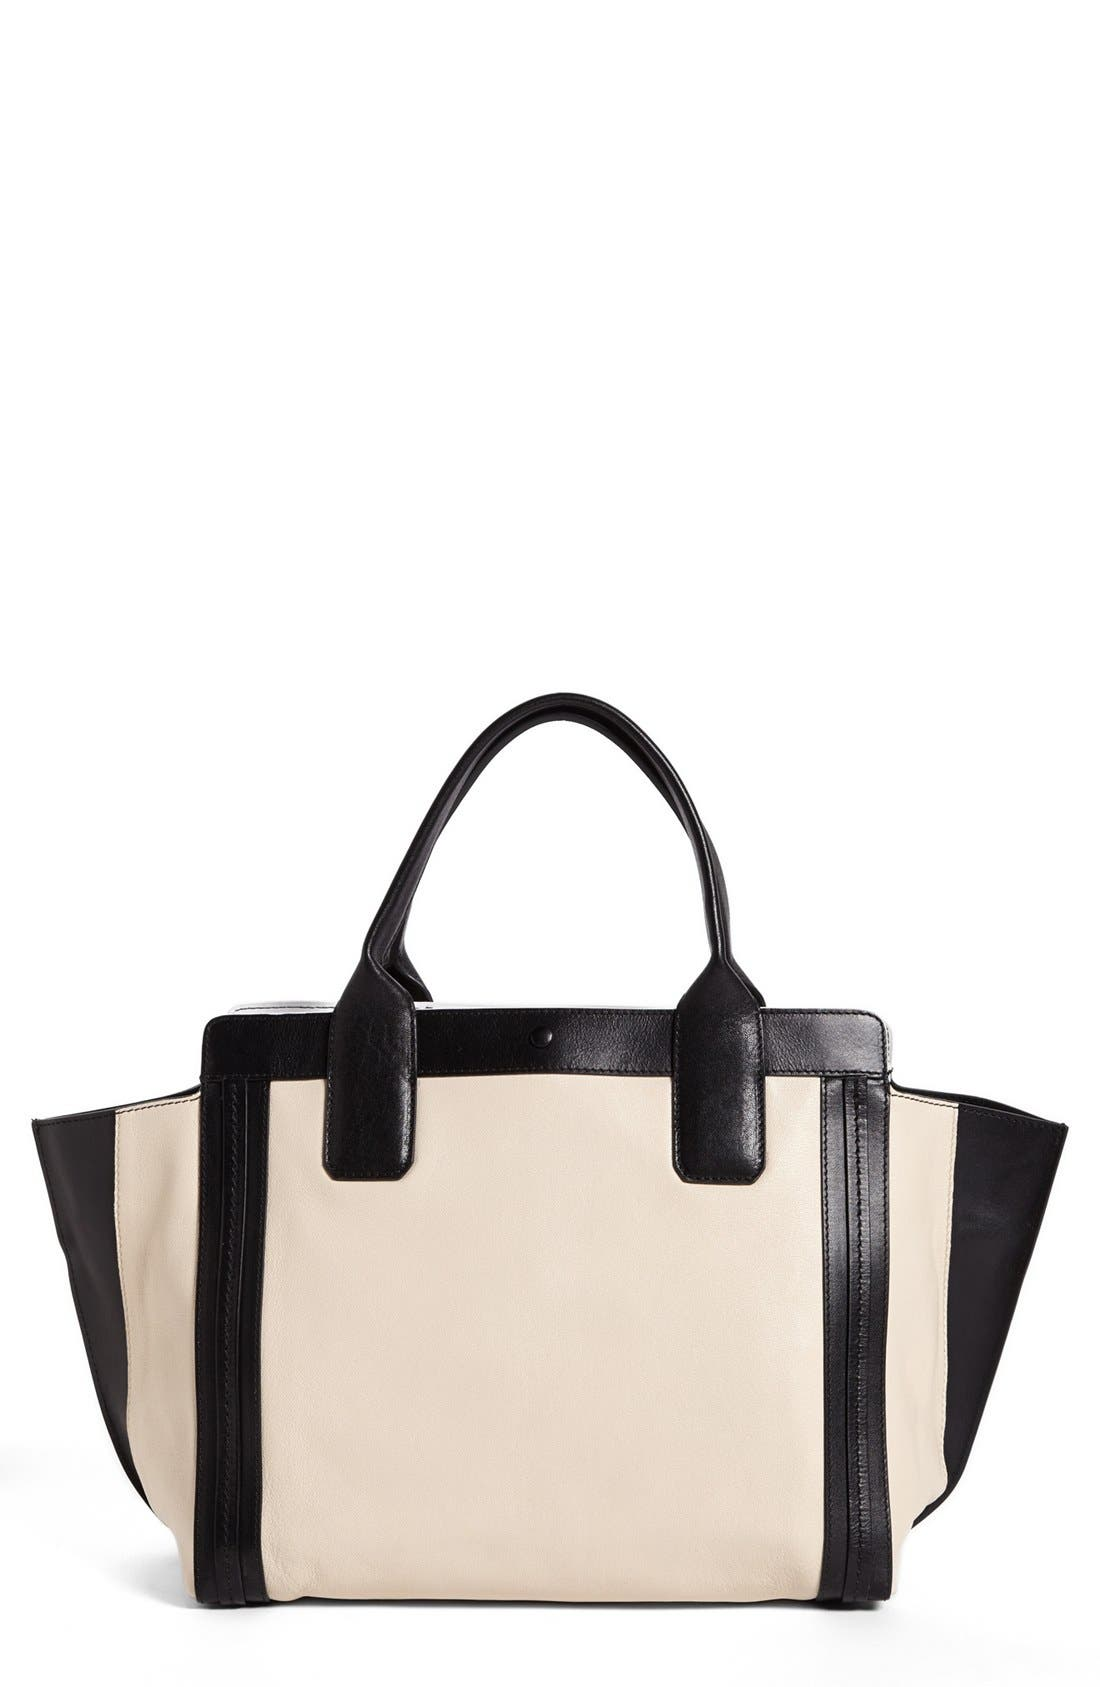 Alternate Image 1 Selected - Chloé 'Alison - Small' Leather Tote